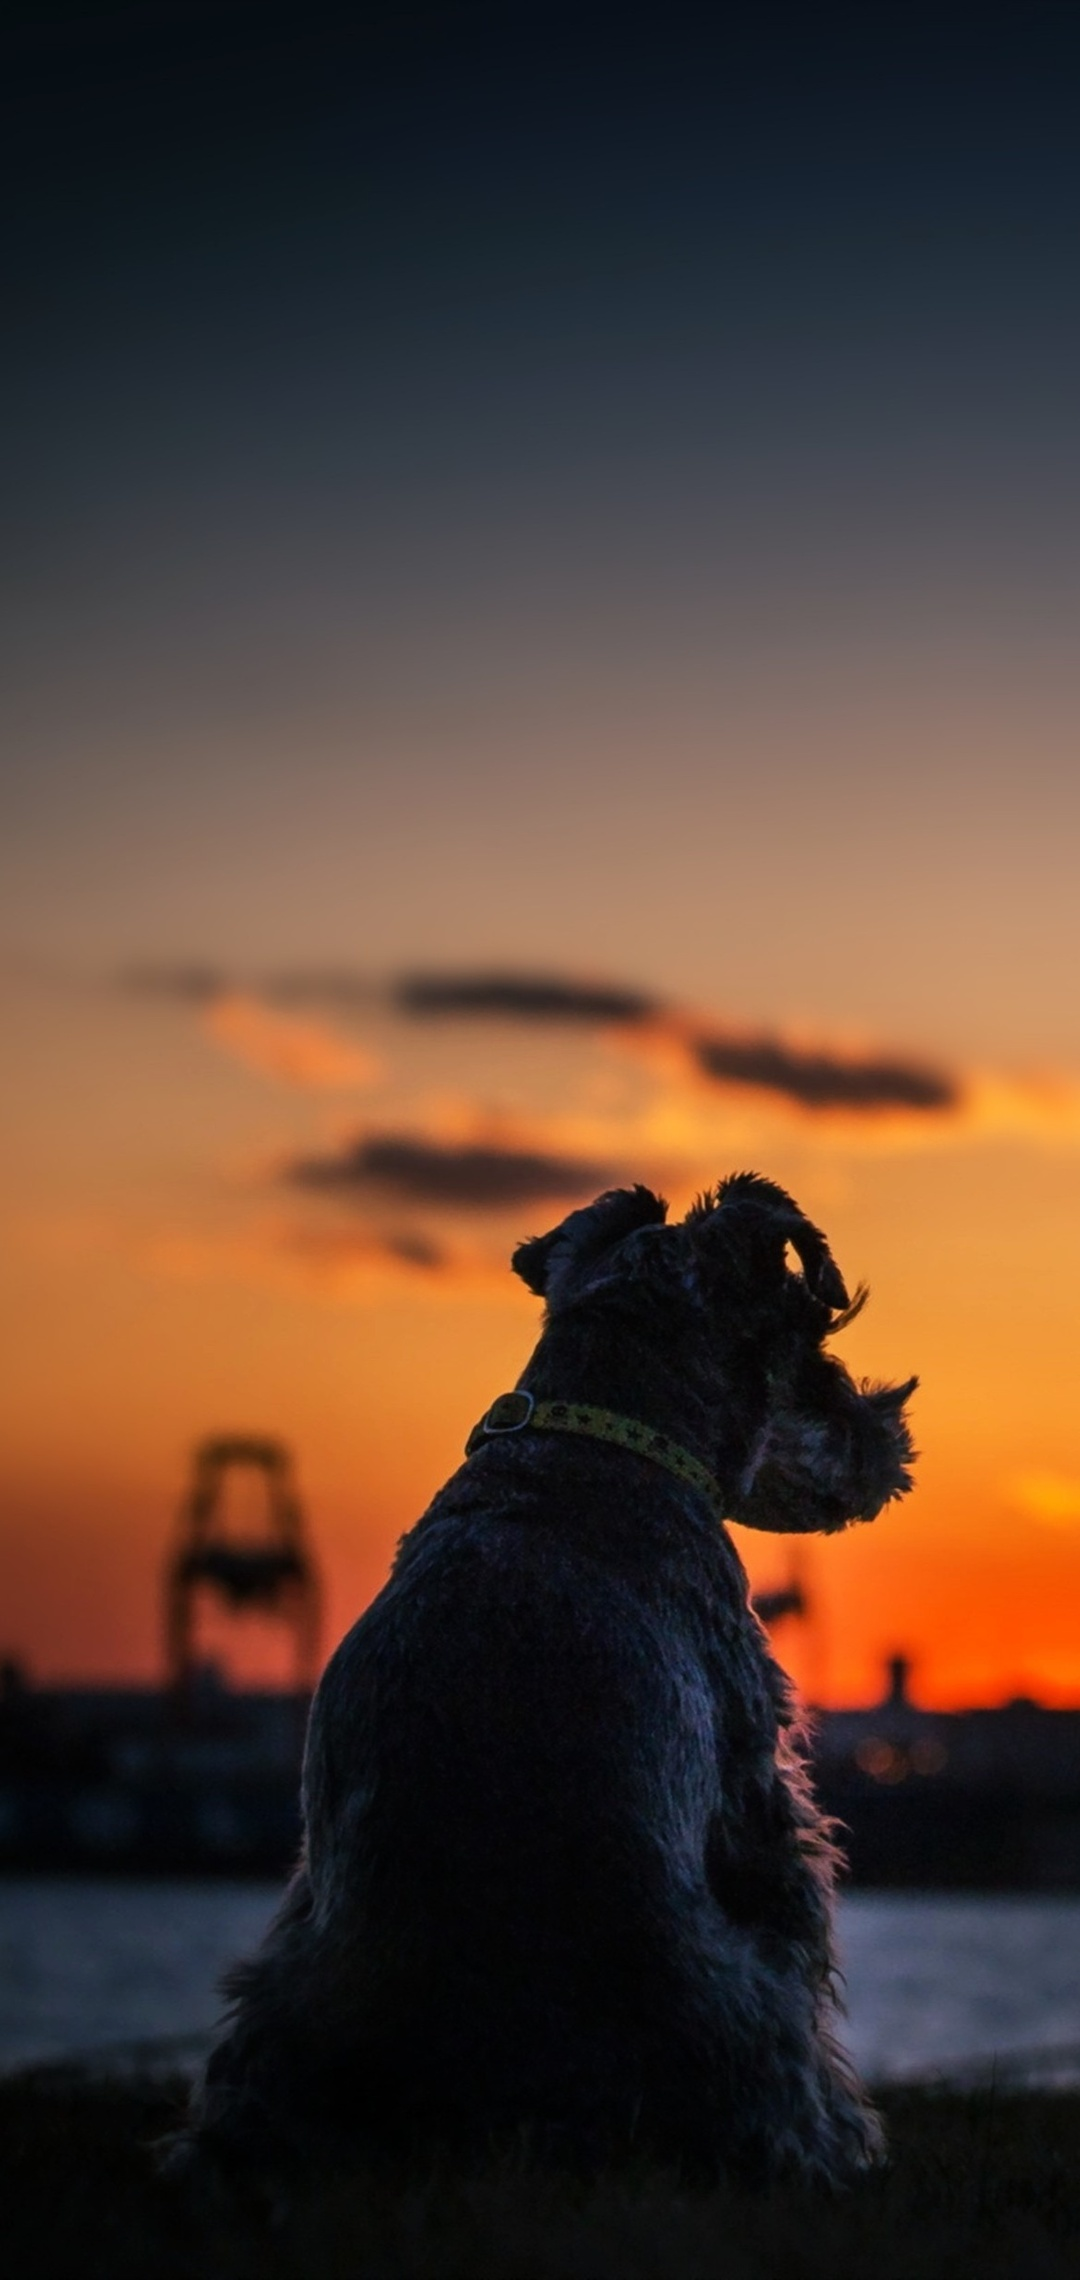 dog-sunset-silhouette-4k-ju.jpg